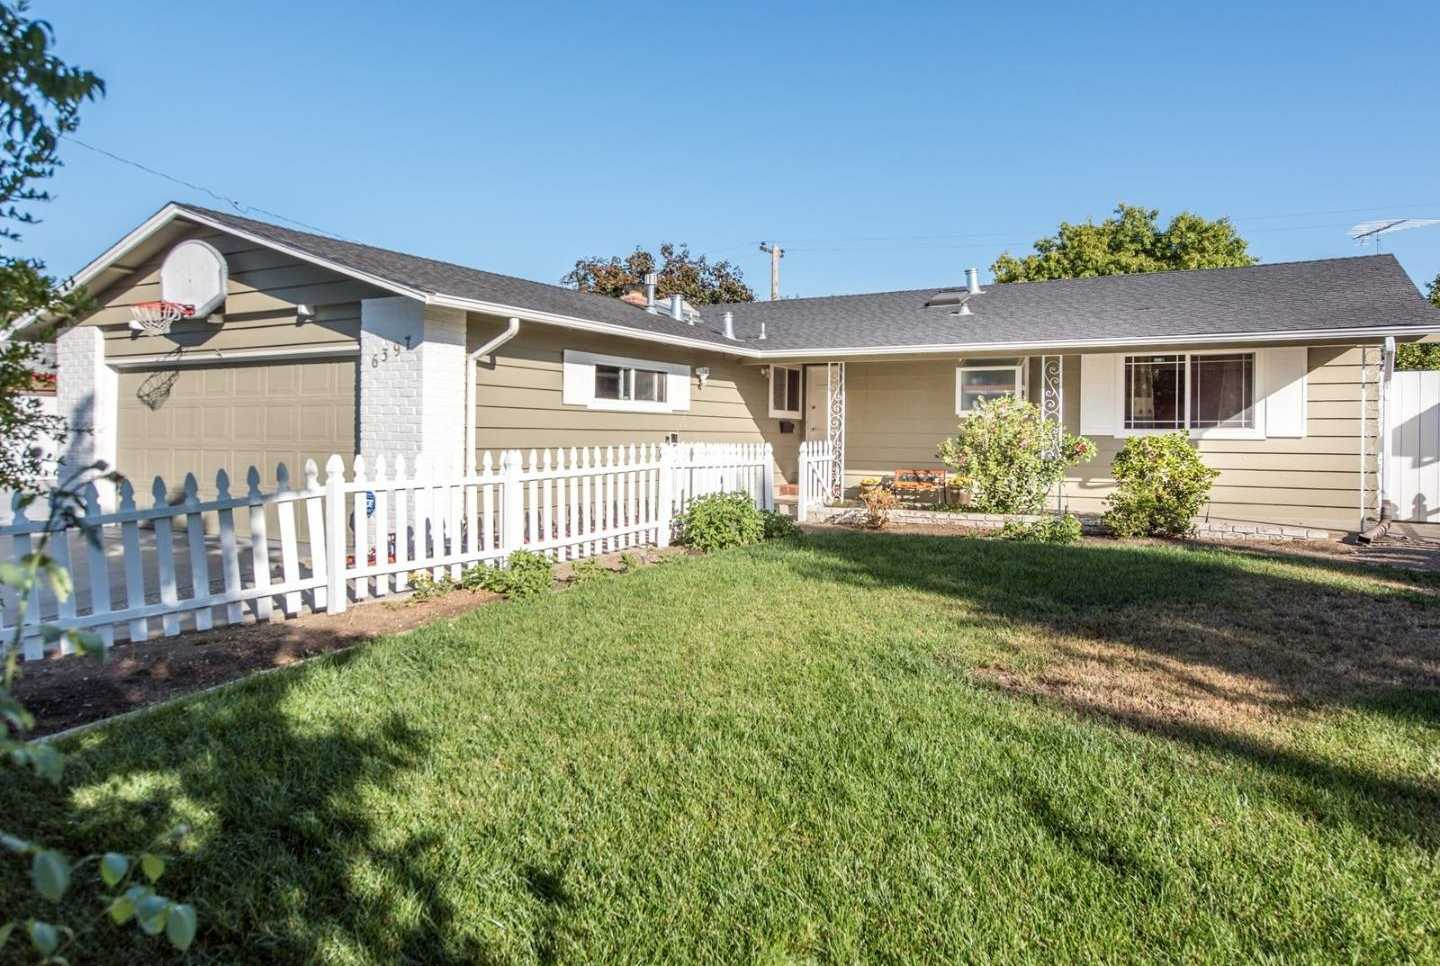 $1,598,000 - 4Br/2Ba -  for Sale in Cupertino